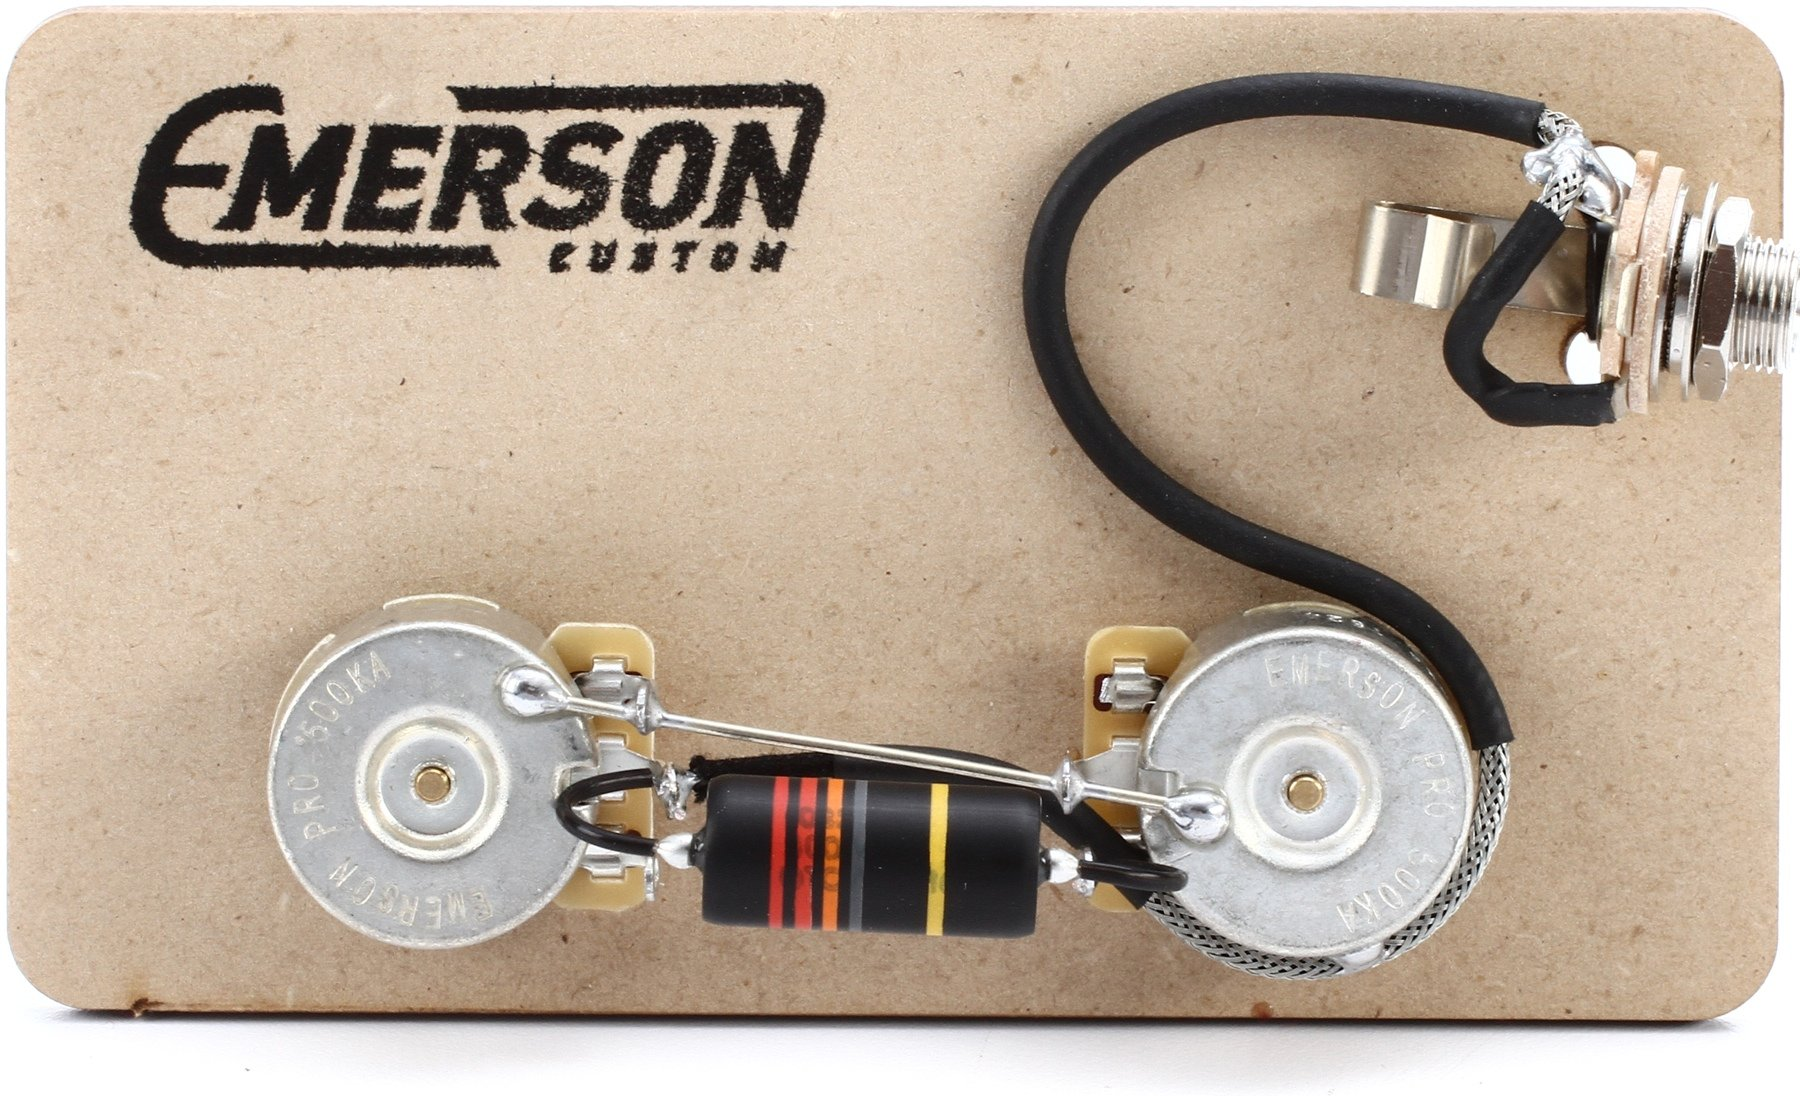 LPBBJR xlarge emerson custom prewired kit for gibson les paul junior sweetwater emerson wiring harness at soozxer.org